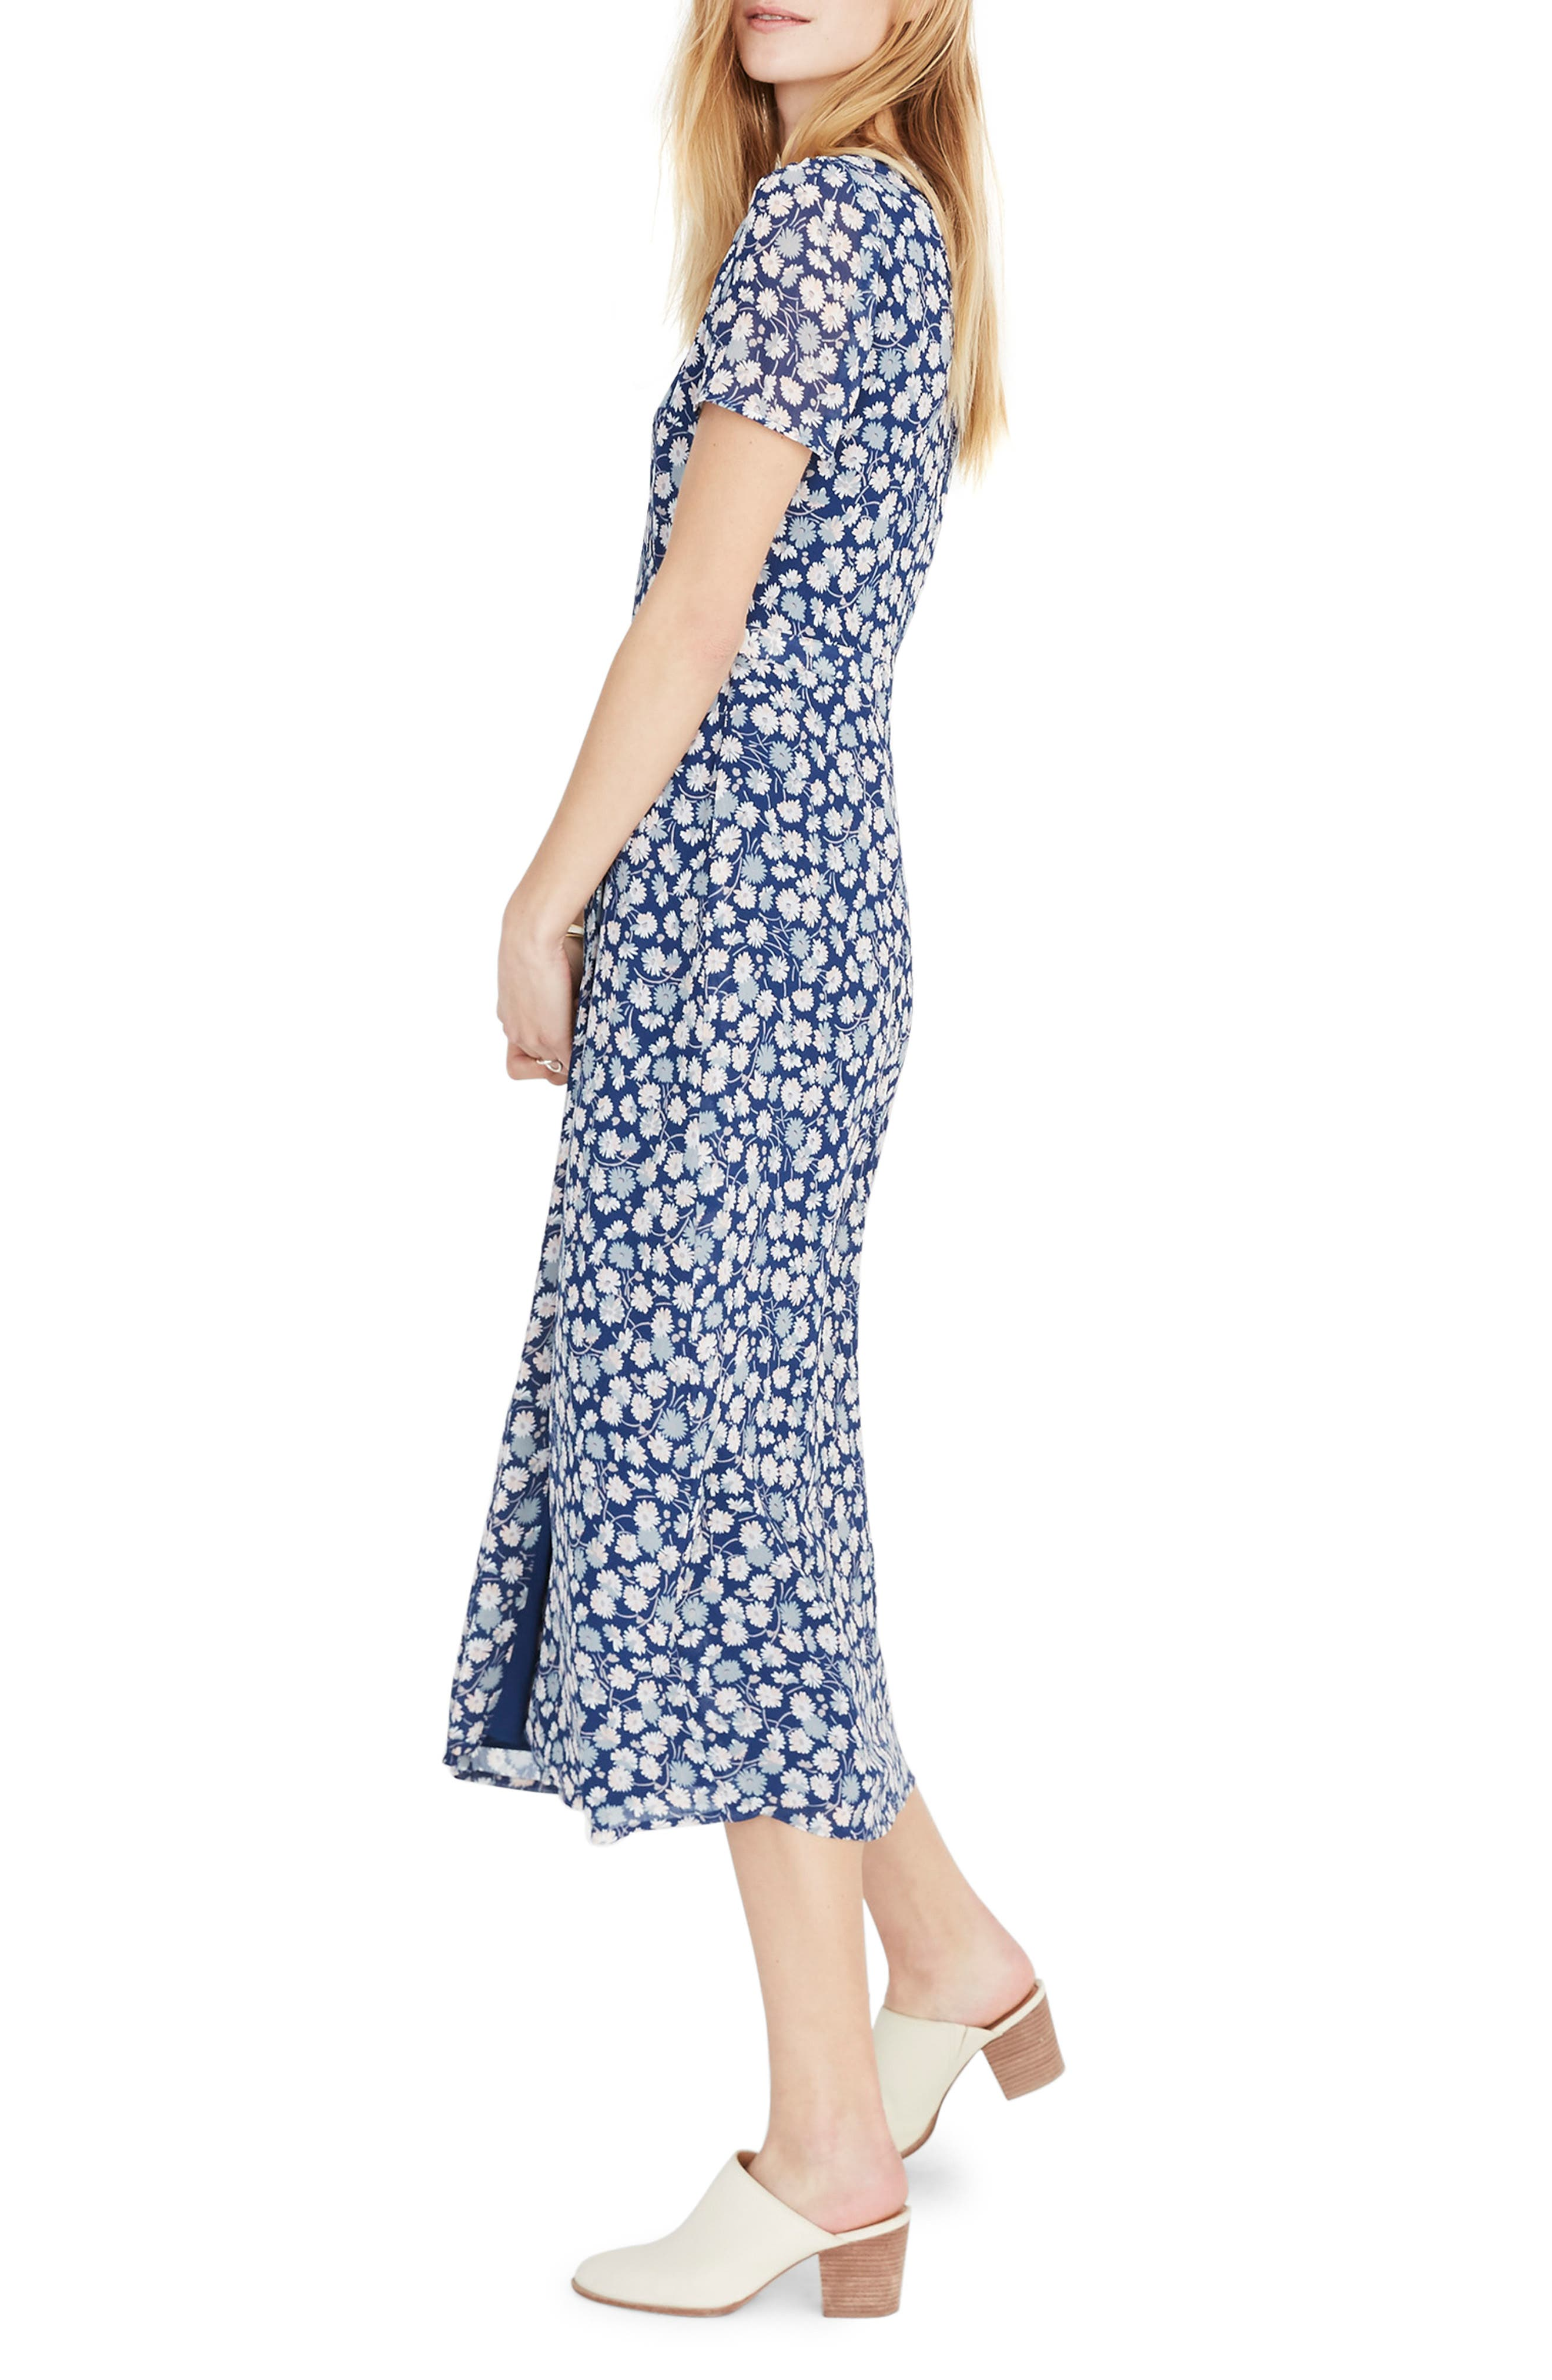 MADEWELL, Floral Wrap Front Midi Dress, Alternate thumbnail 2, color, 400